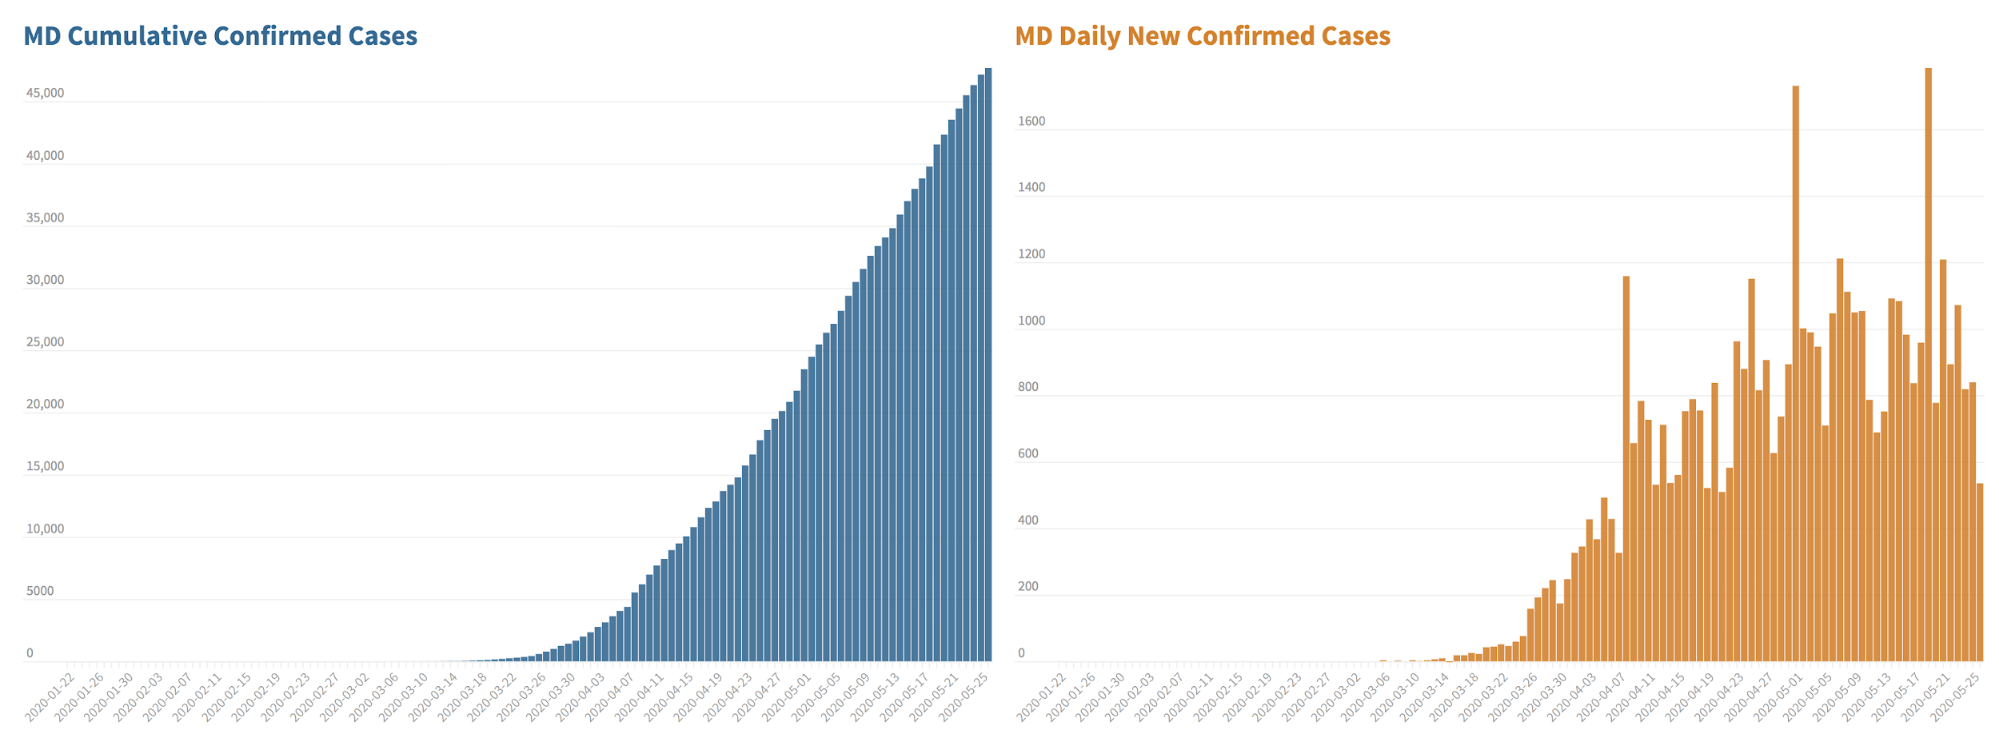 MD_cases_cumulative_vs_daily